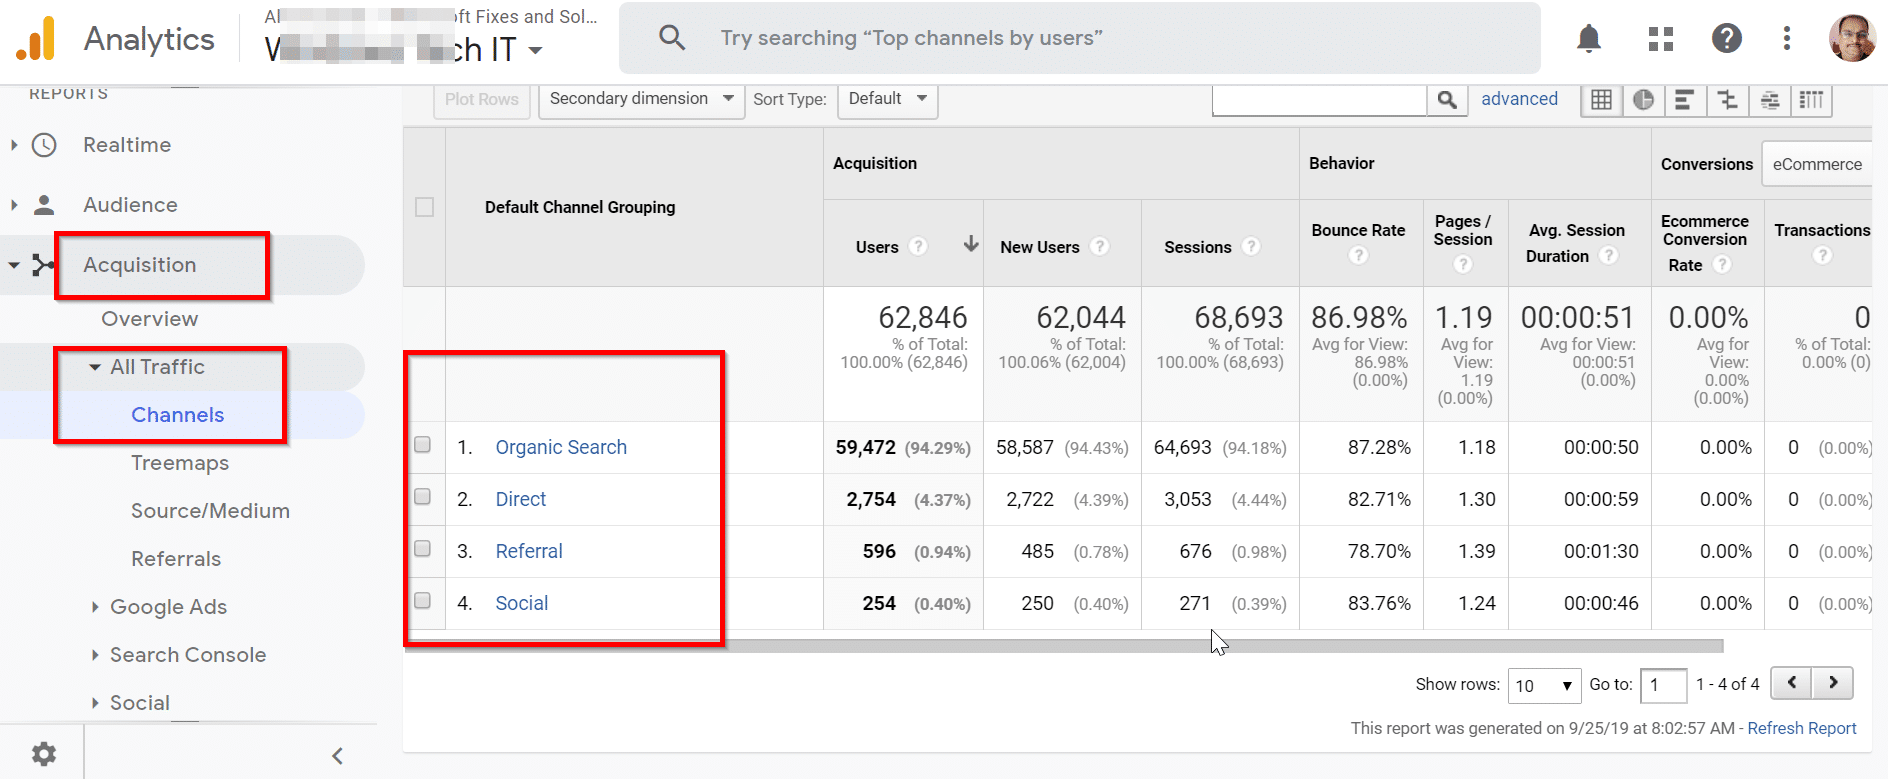 How to View Organic Traffic Data in Google Analytics